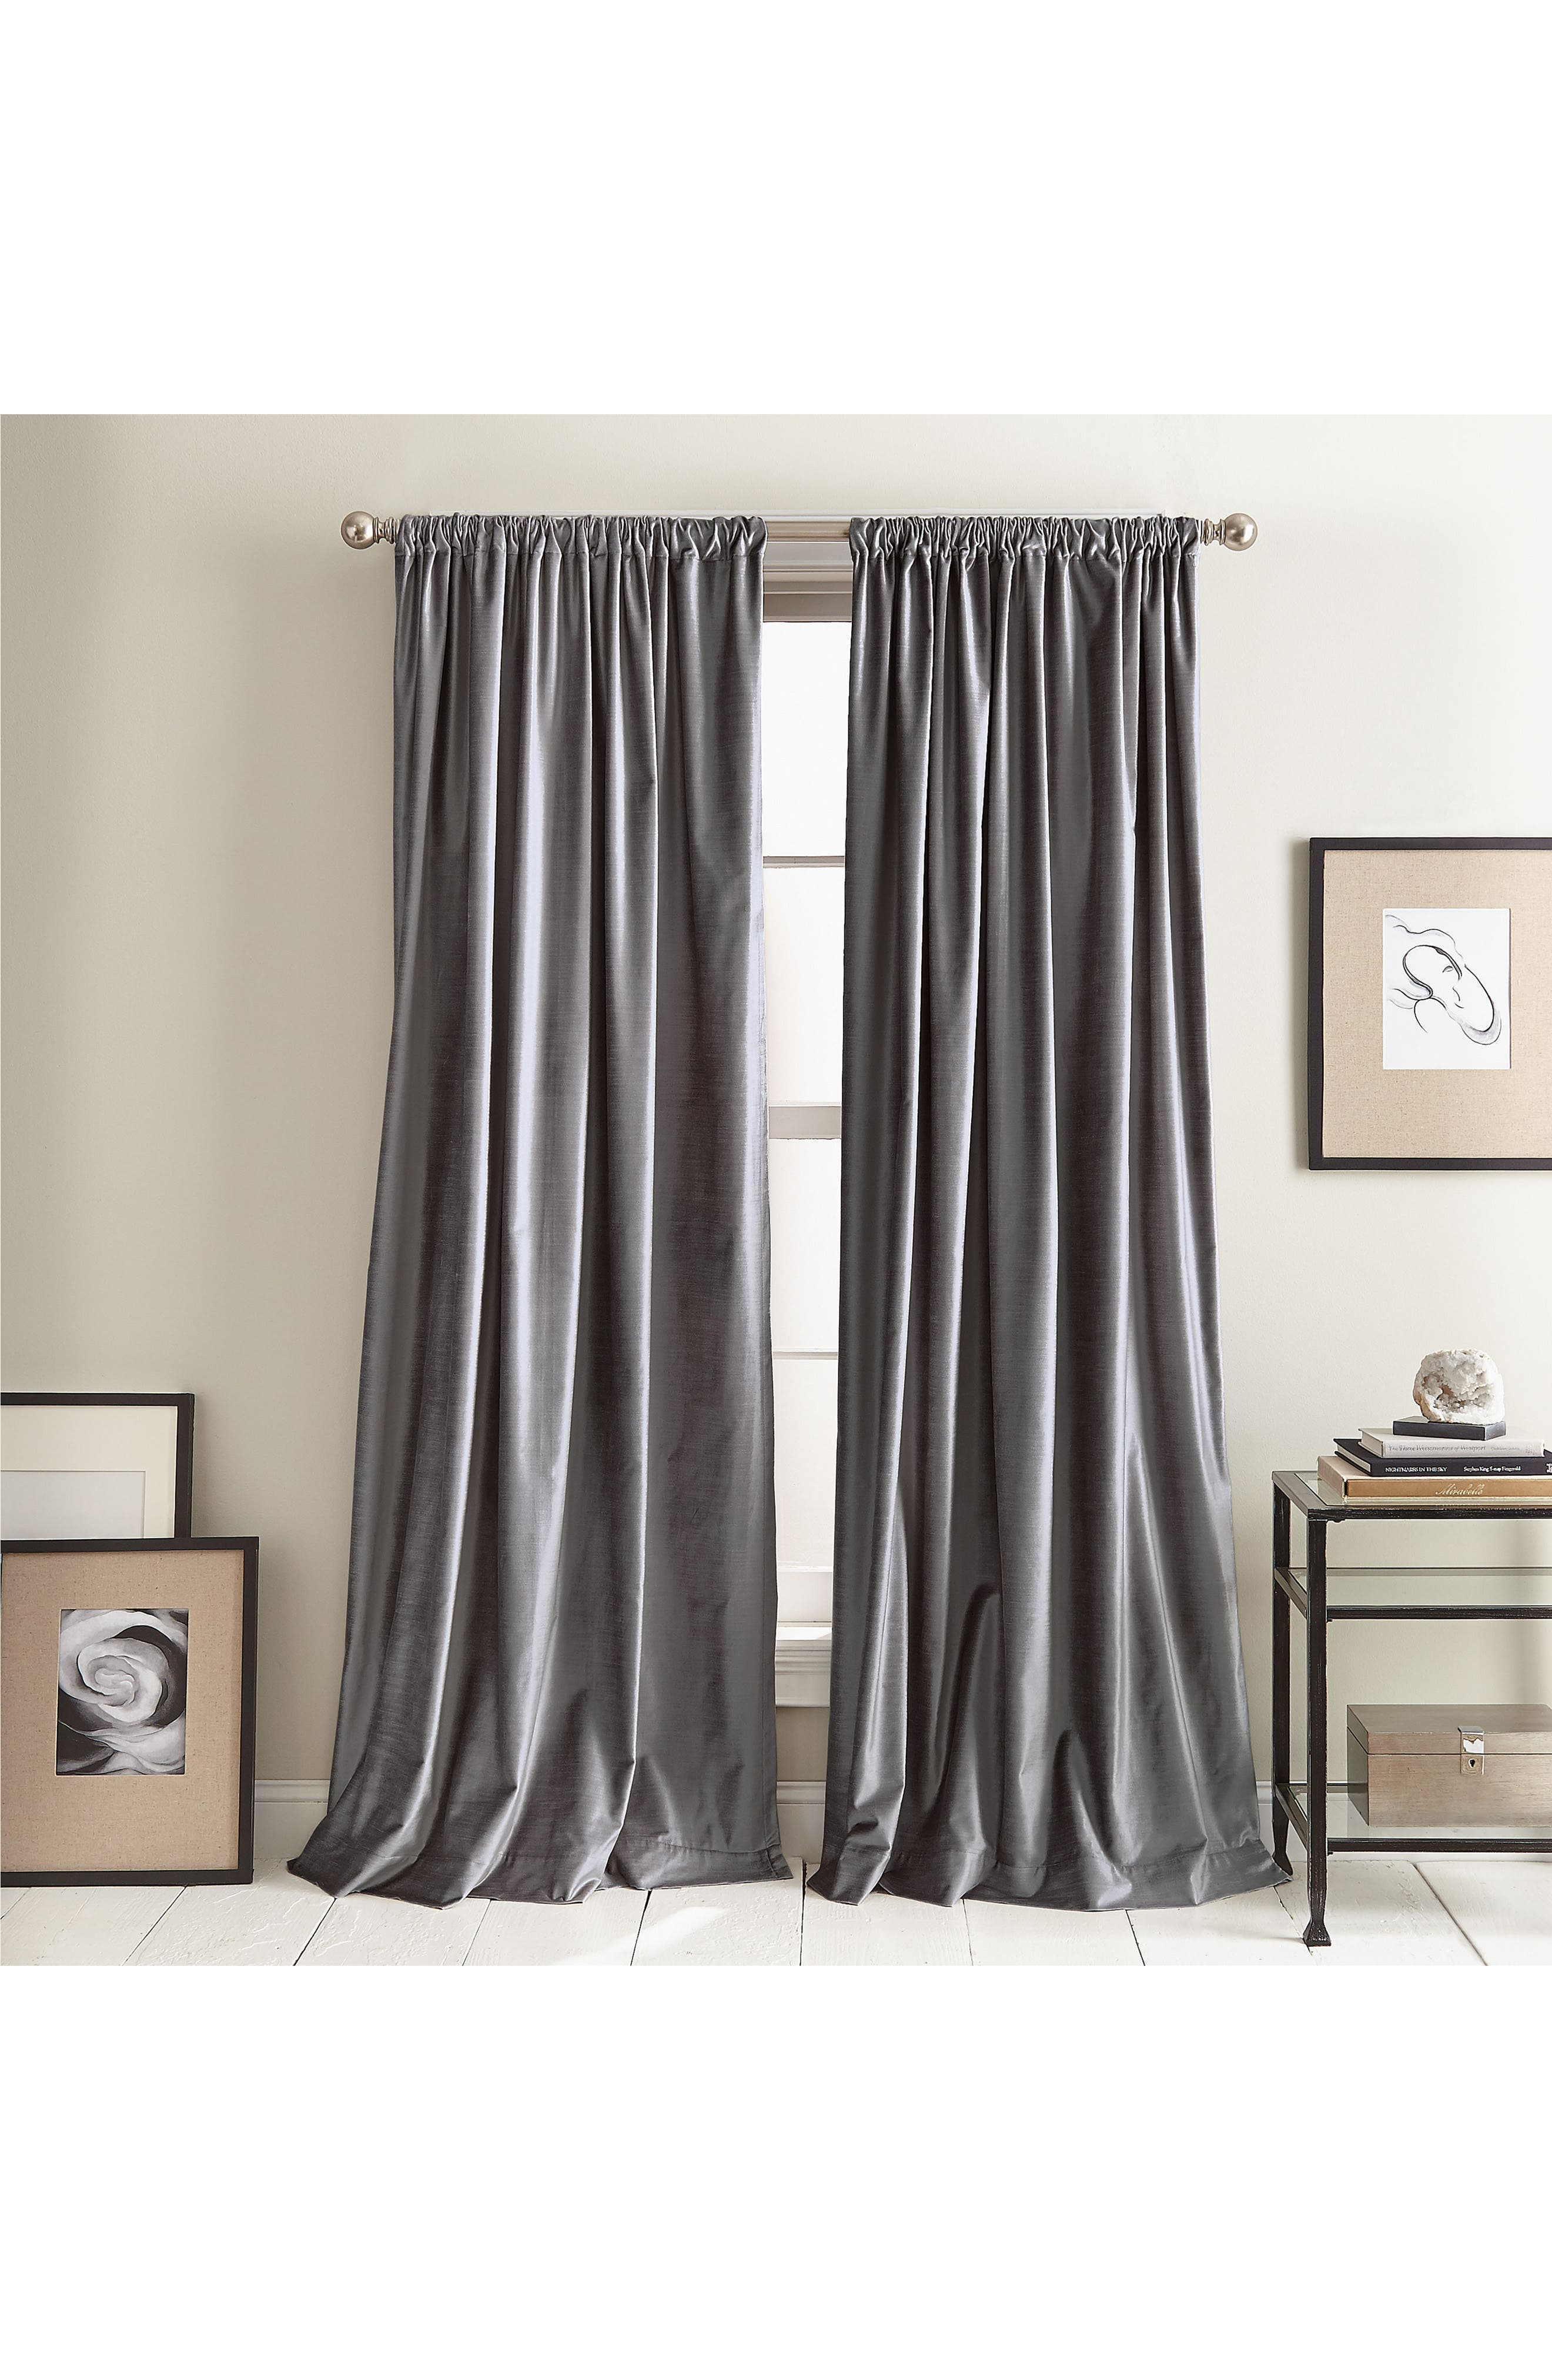 The Very First Thing You Could Do To Rotate The Planning Of Your Abode Is  Actually Upgrading, This Also Nordstrom Curtains Photo Gallery Could Be A  Very ...